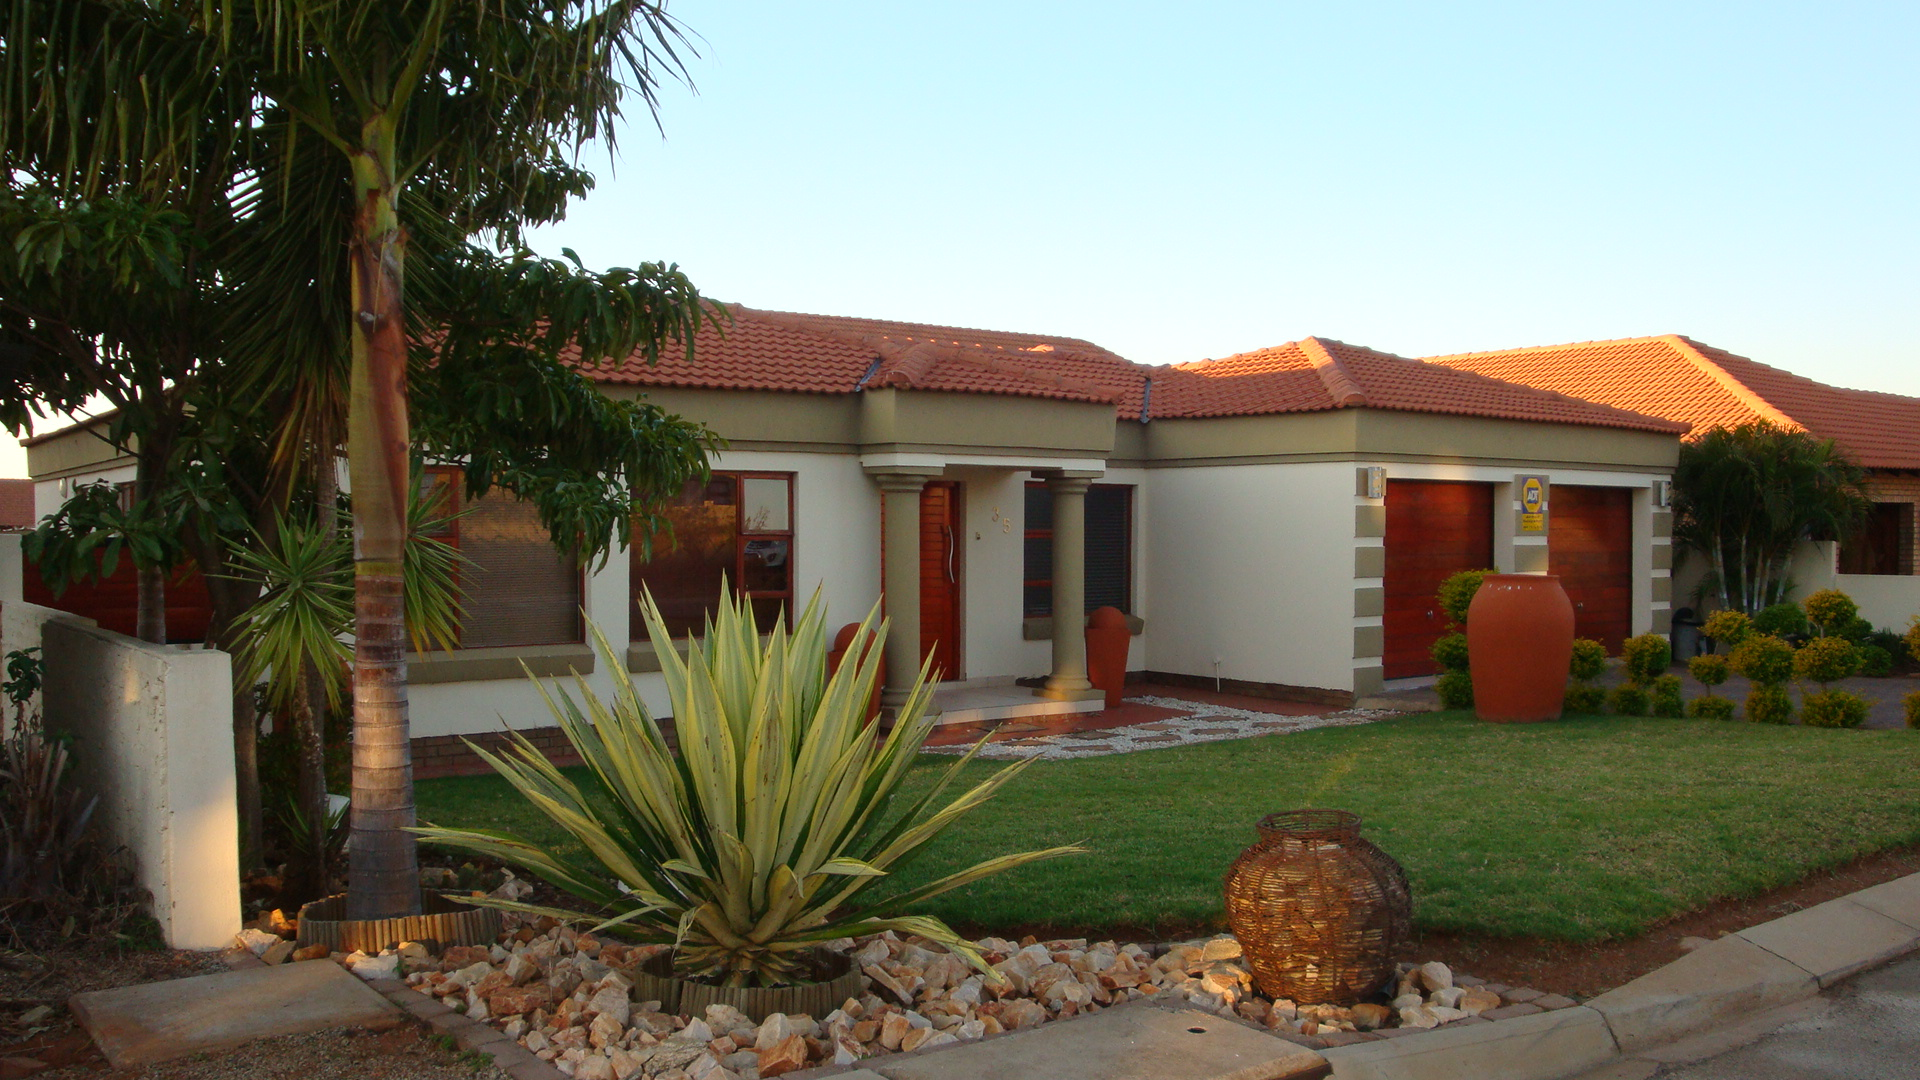 4 bedroom house for sale in polokwane for Beautiful houses plans in south africa